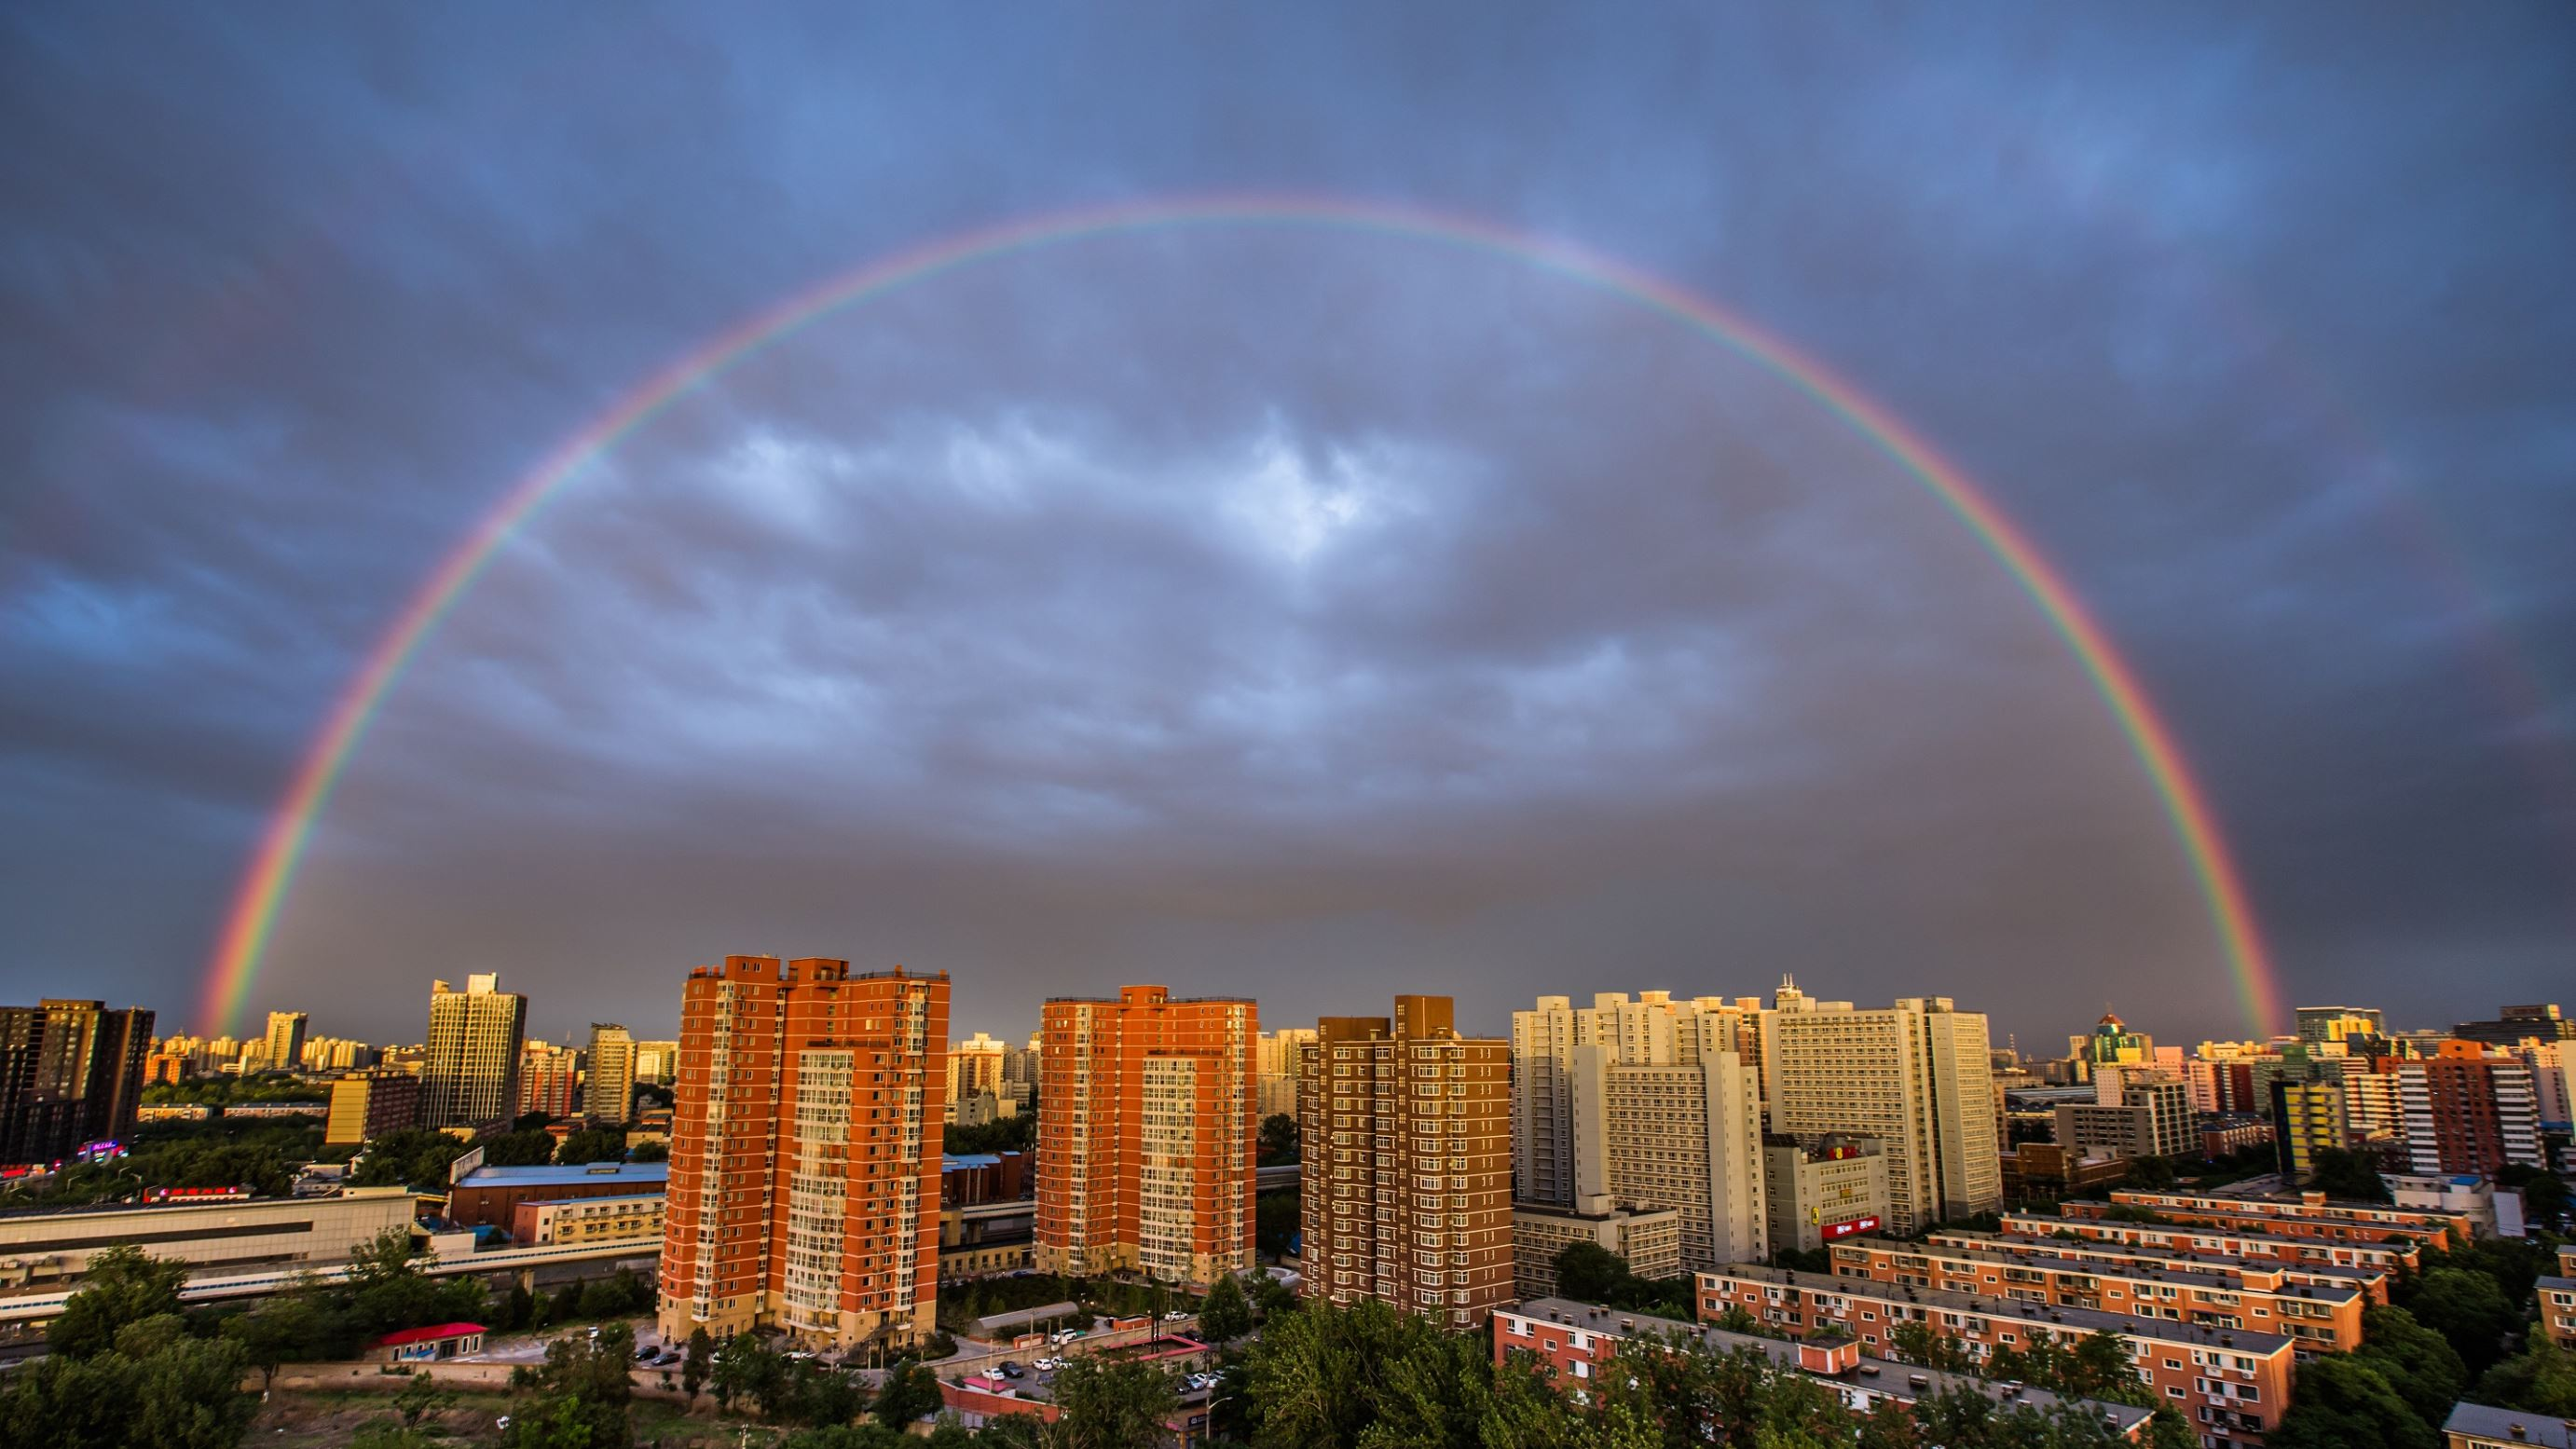 Слайд 48 из 86: BEIJING, CHINA - MAY 23: (CHINA OUT) Double rainbow appears on sky after an evening rain on May 23, 2016 in Beijing, China. (Photo by VCG/VCG via Getty Images)